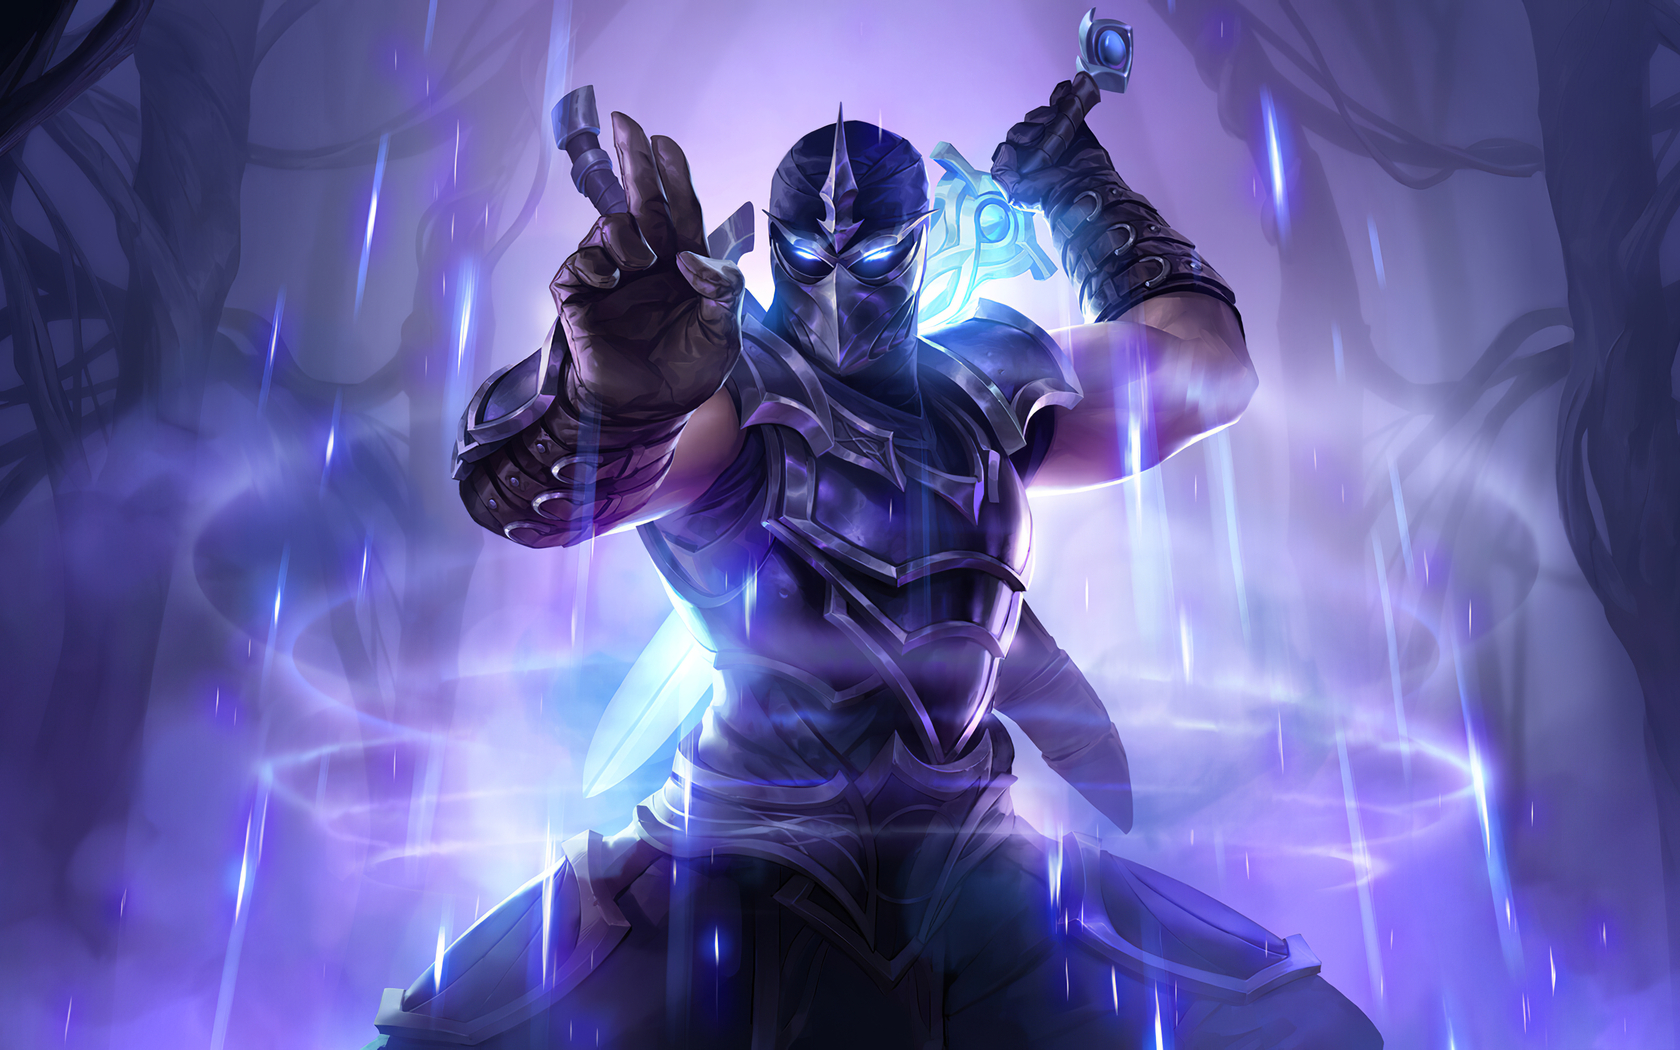 shen-legends-of-runeterra-b4.jpg